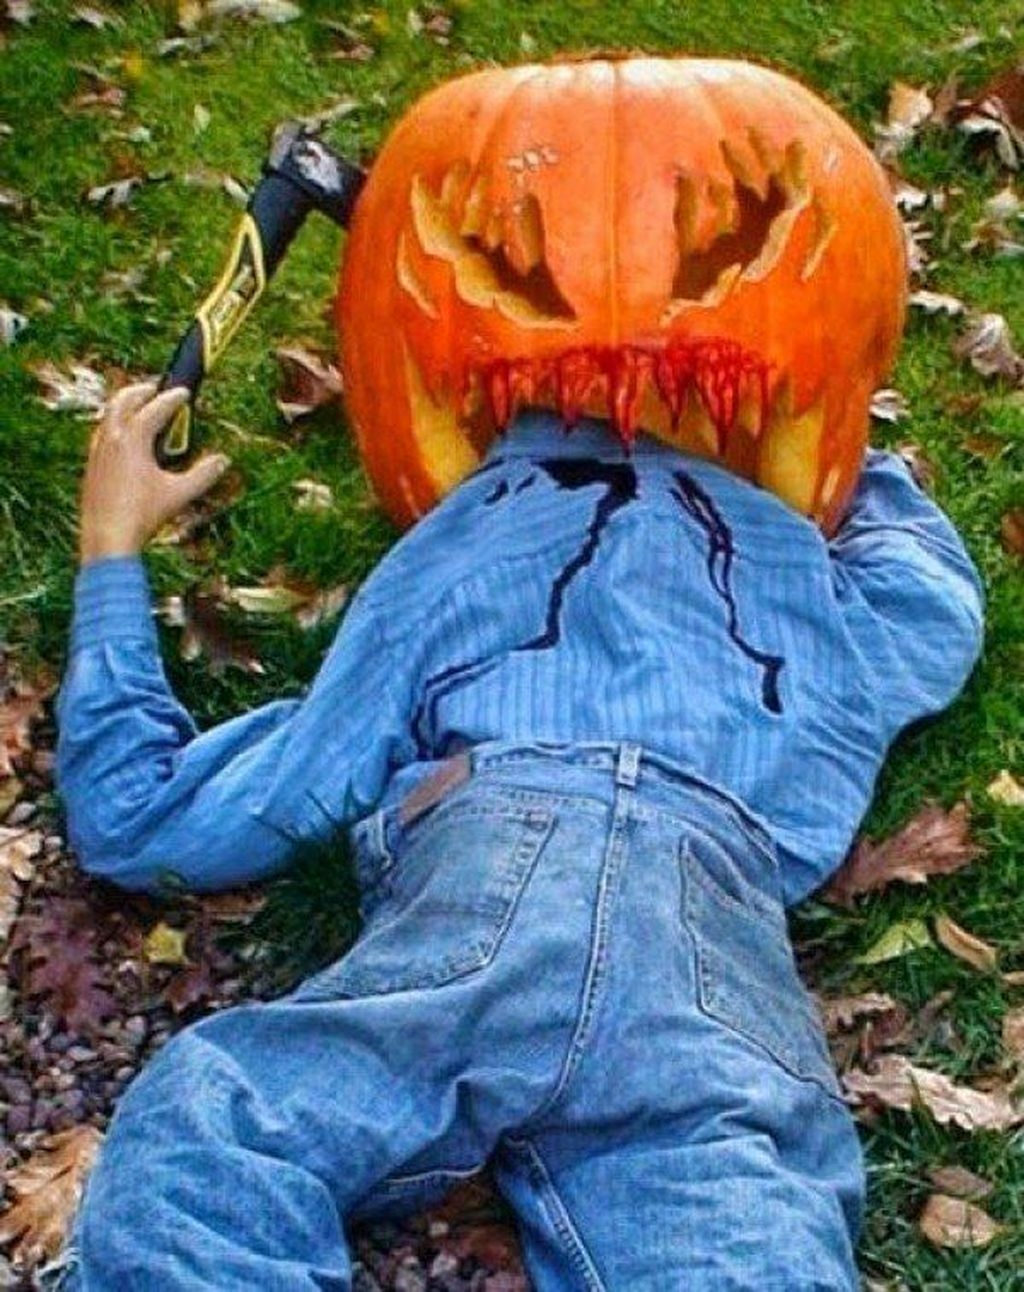 Casual Halloween Decorations Ideas That Are So Scary31